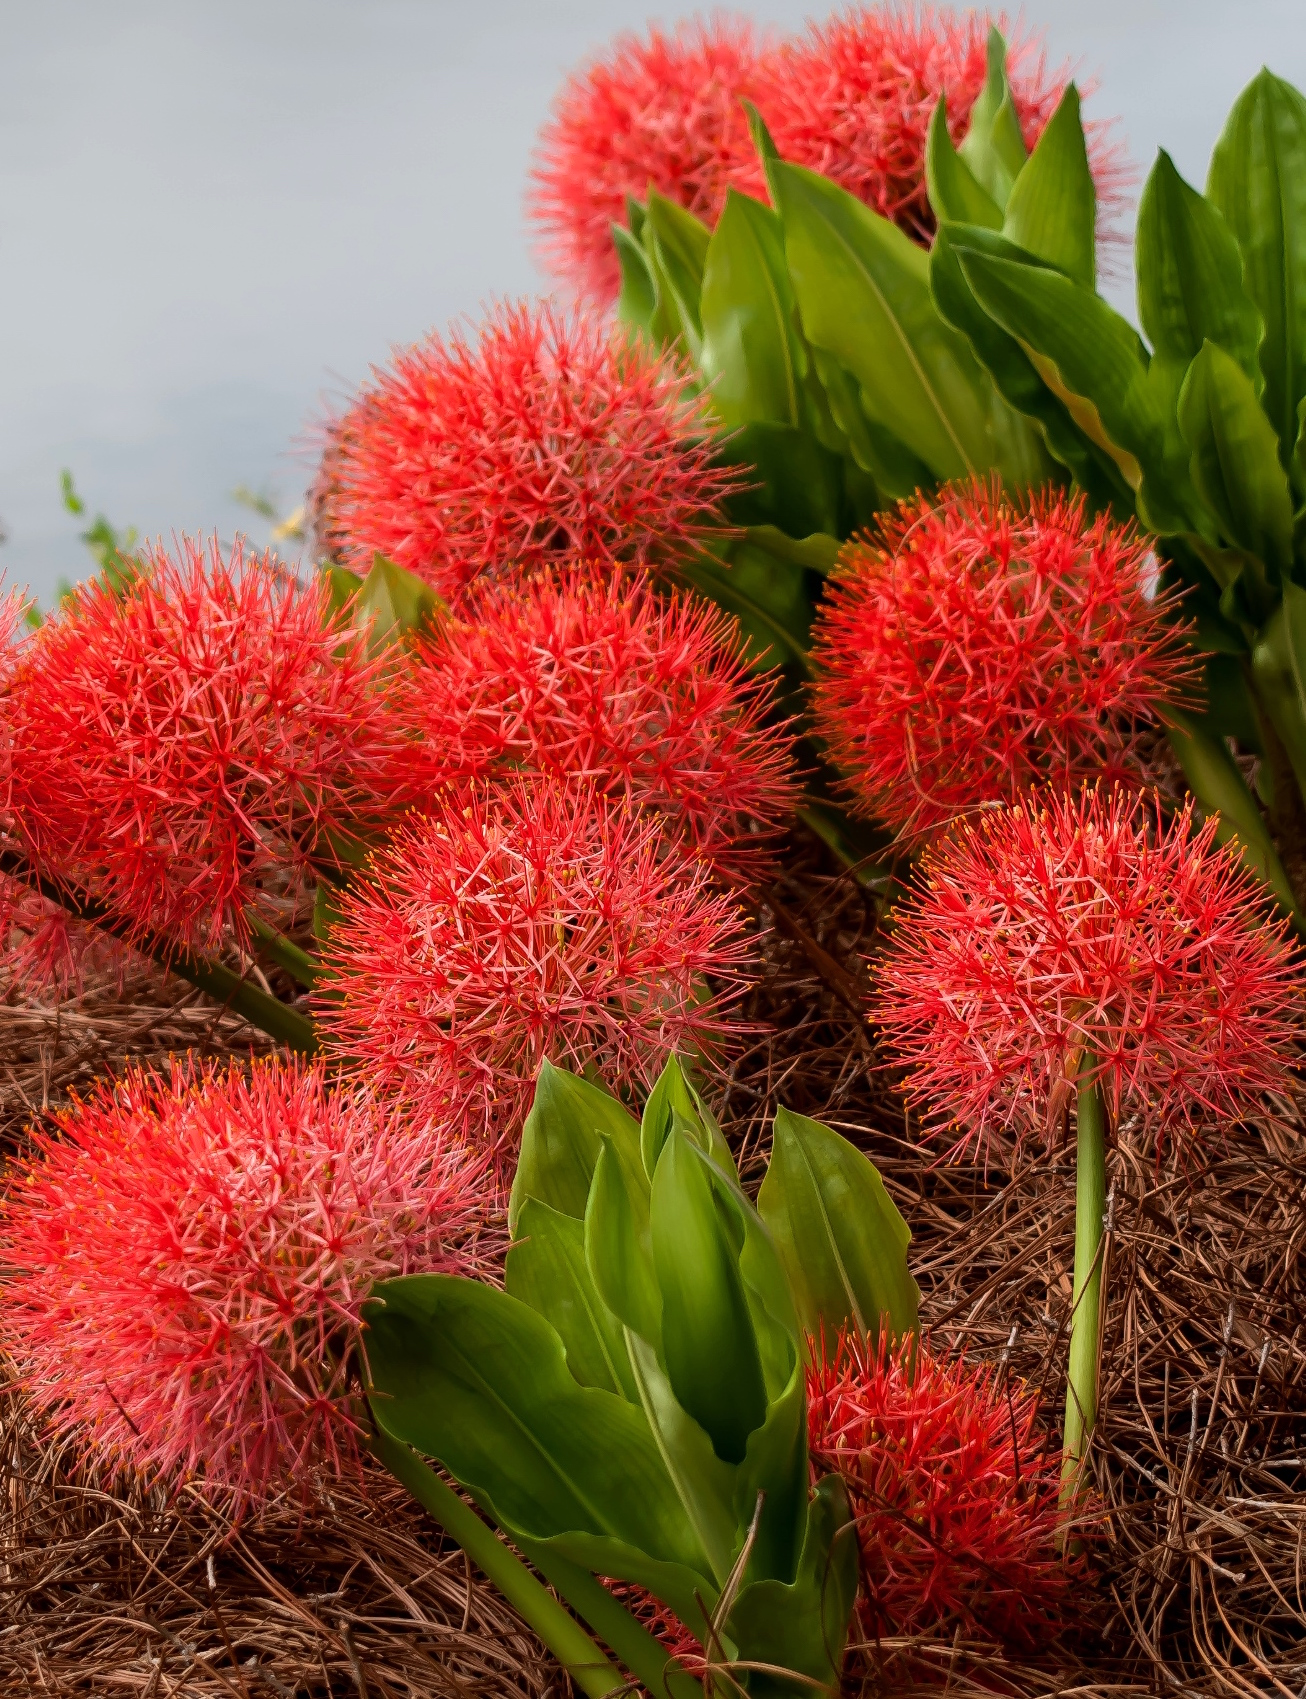 The African blood lily bulb should be planted deep enough so that the top of the neck is above the soil surface. Cluster the bulbs in a group of five to seven, spaced 10 to 12 inches apart to create a dazzling, traffic-stopping show.